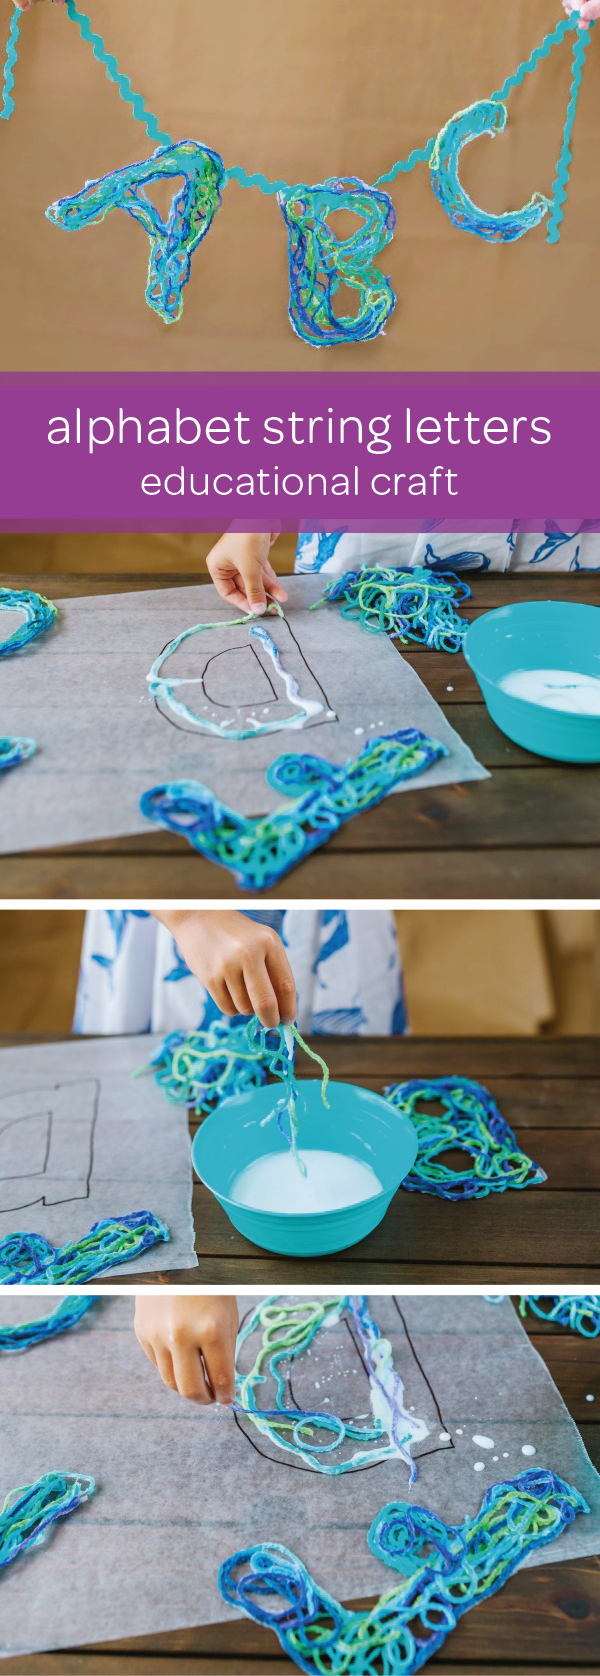 Help your little one learn all the letters of the alphabet with this string letters craft and other educational game ideas. Draw the outline of the letters on wax paper and have your toddler use colorful yarn dipped in kid-safe glue to fill in the letters. Once your letters are dry, peel them off the wax paper and hang them on a clothesline. Your child can practice sorting the letters into alphabetical order. For a more challenging game, have your kid try to build simple words.